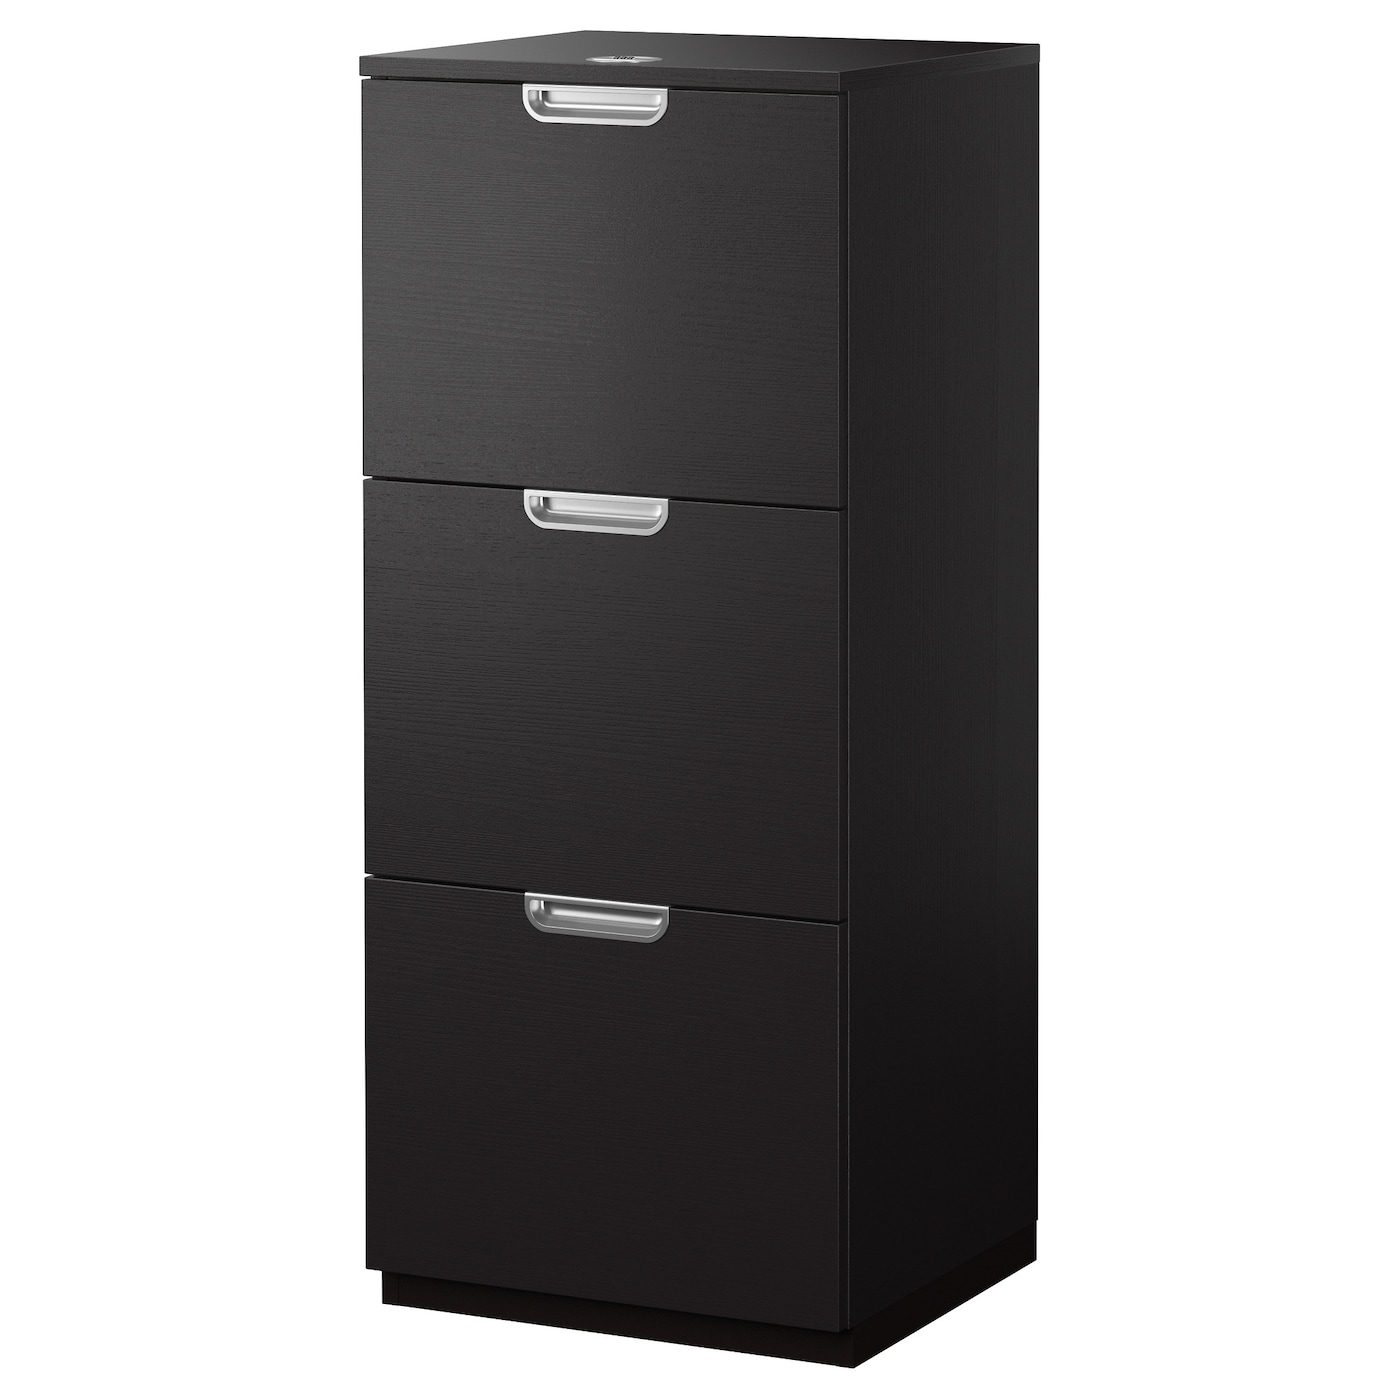 Galant File Cabinet Black Brown 51x120 Cm Ikea